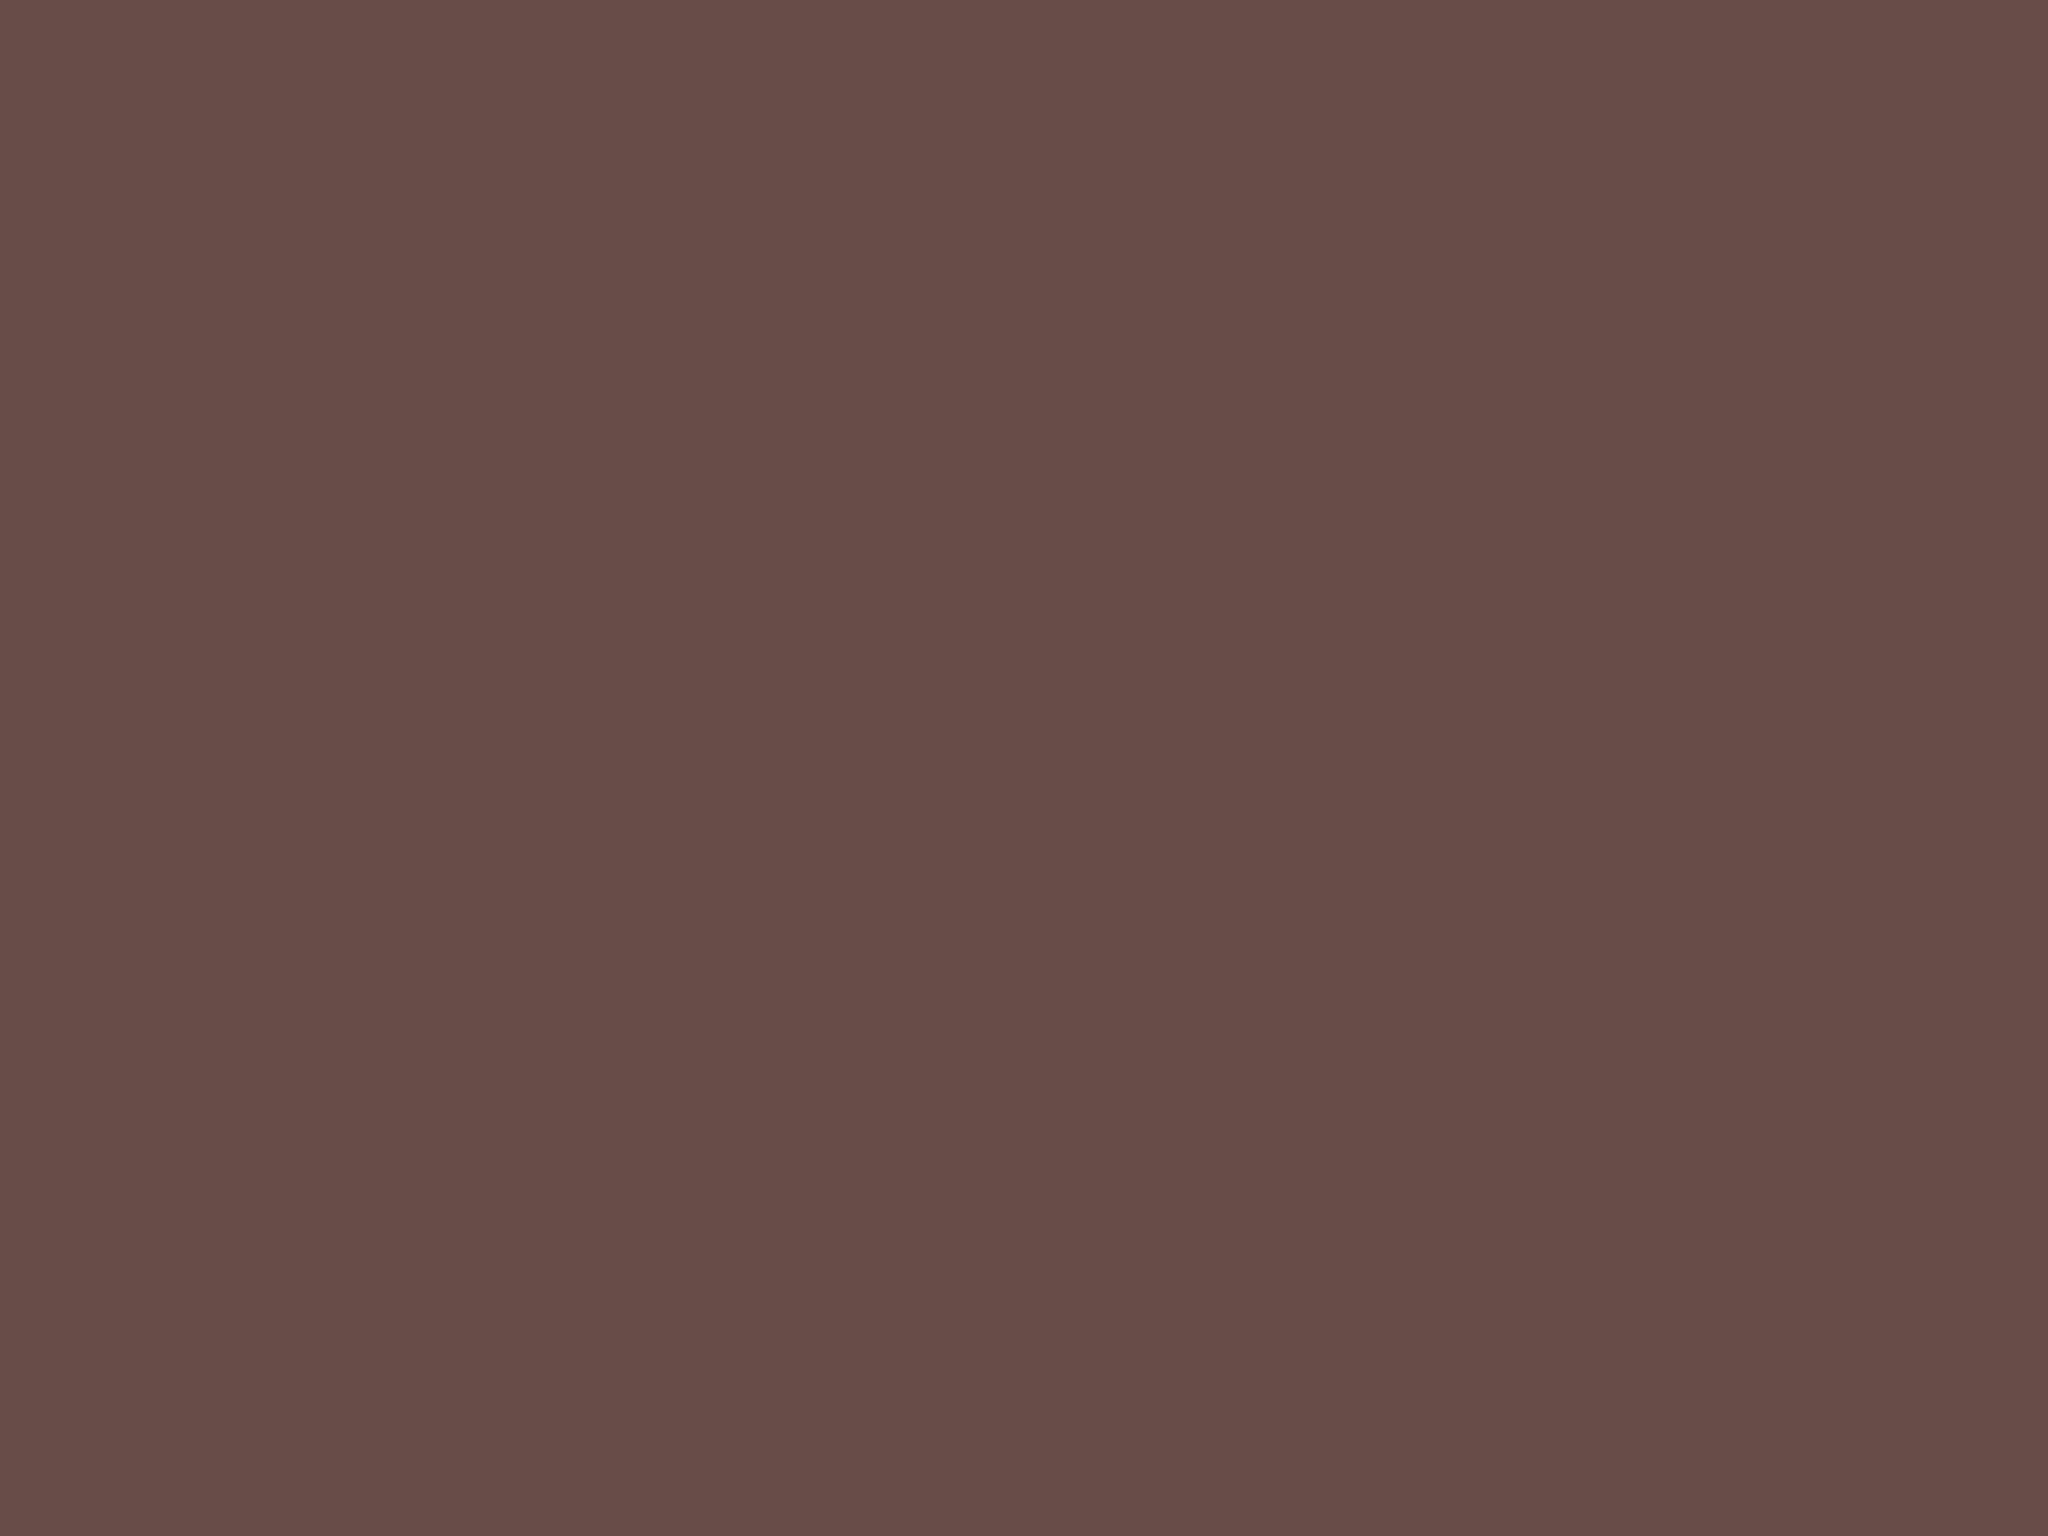 2048x1536 Medium Taupe Solid Color Background